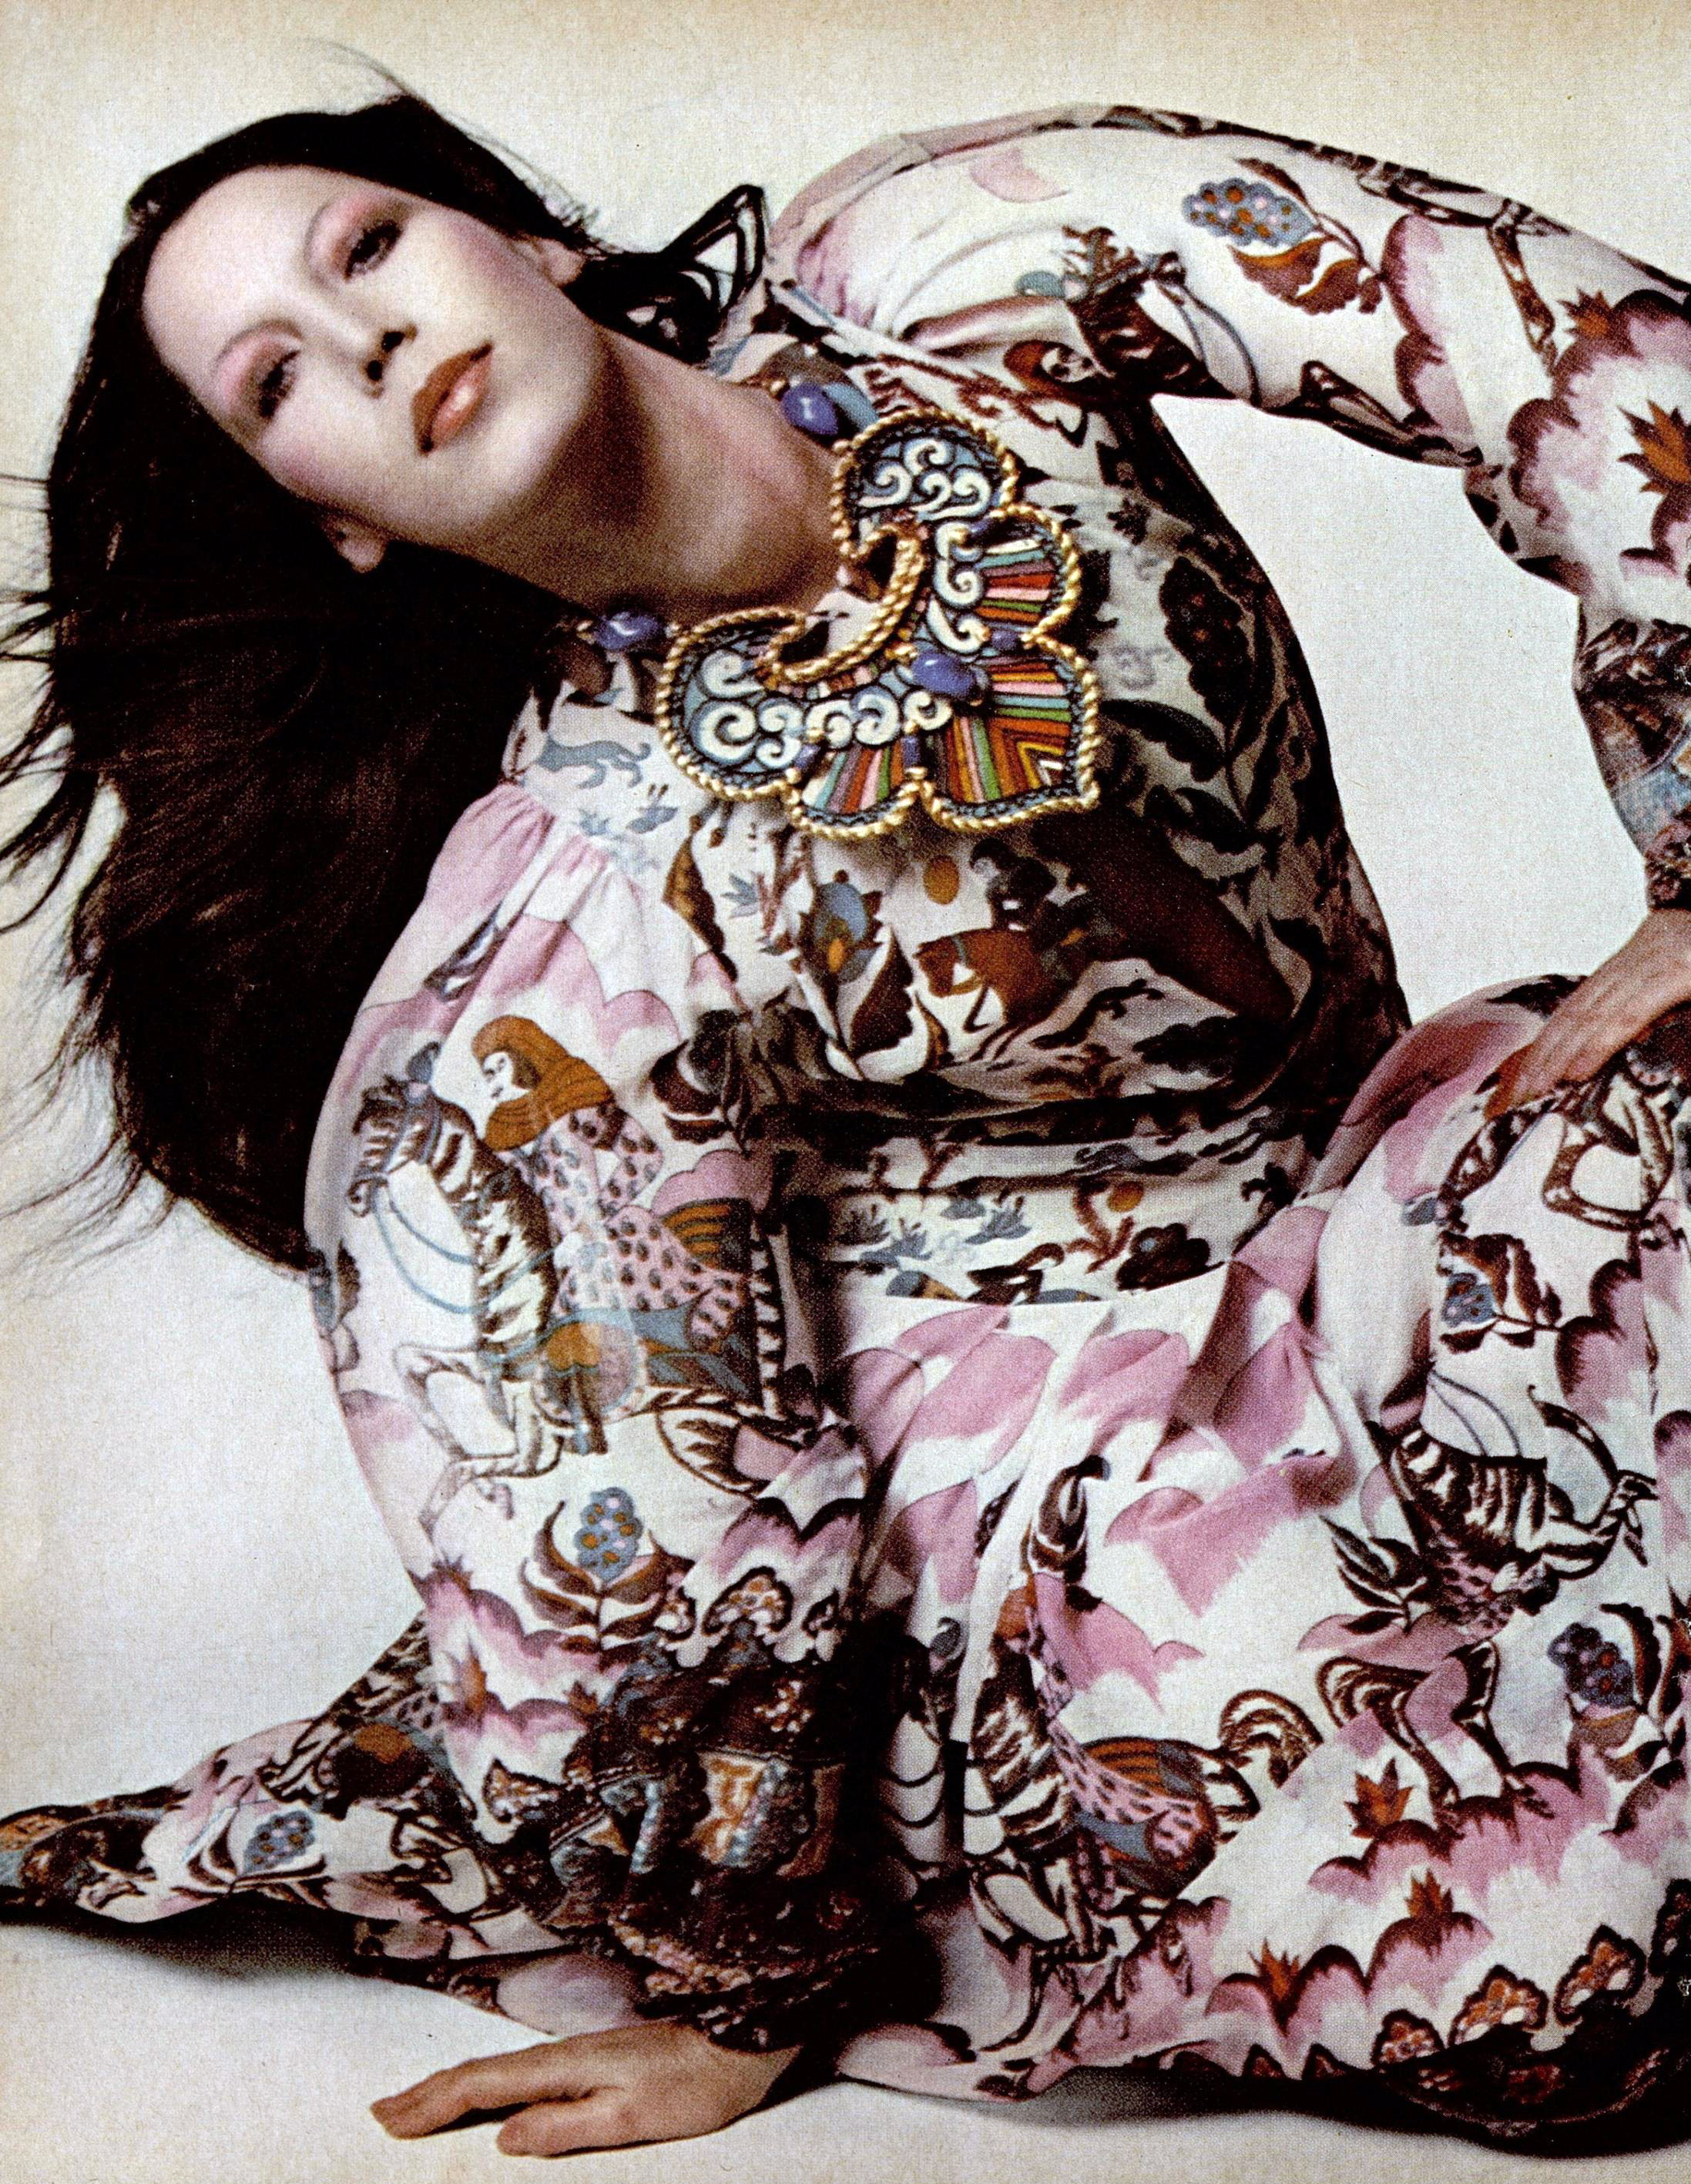 Harper's Bazaar; New York105.3124 (Mar 1972)_king_58_porter.jpg